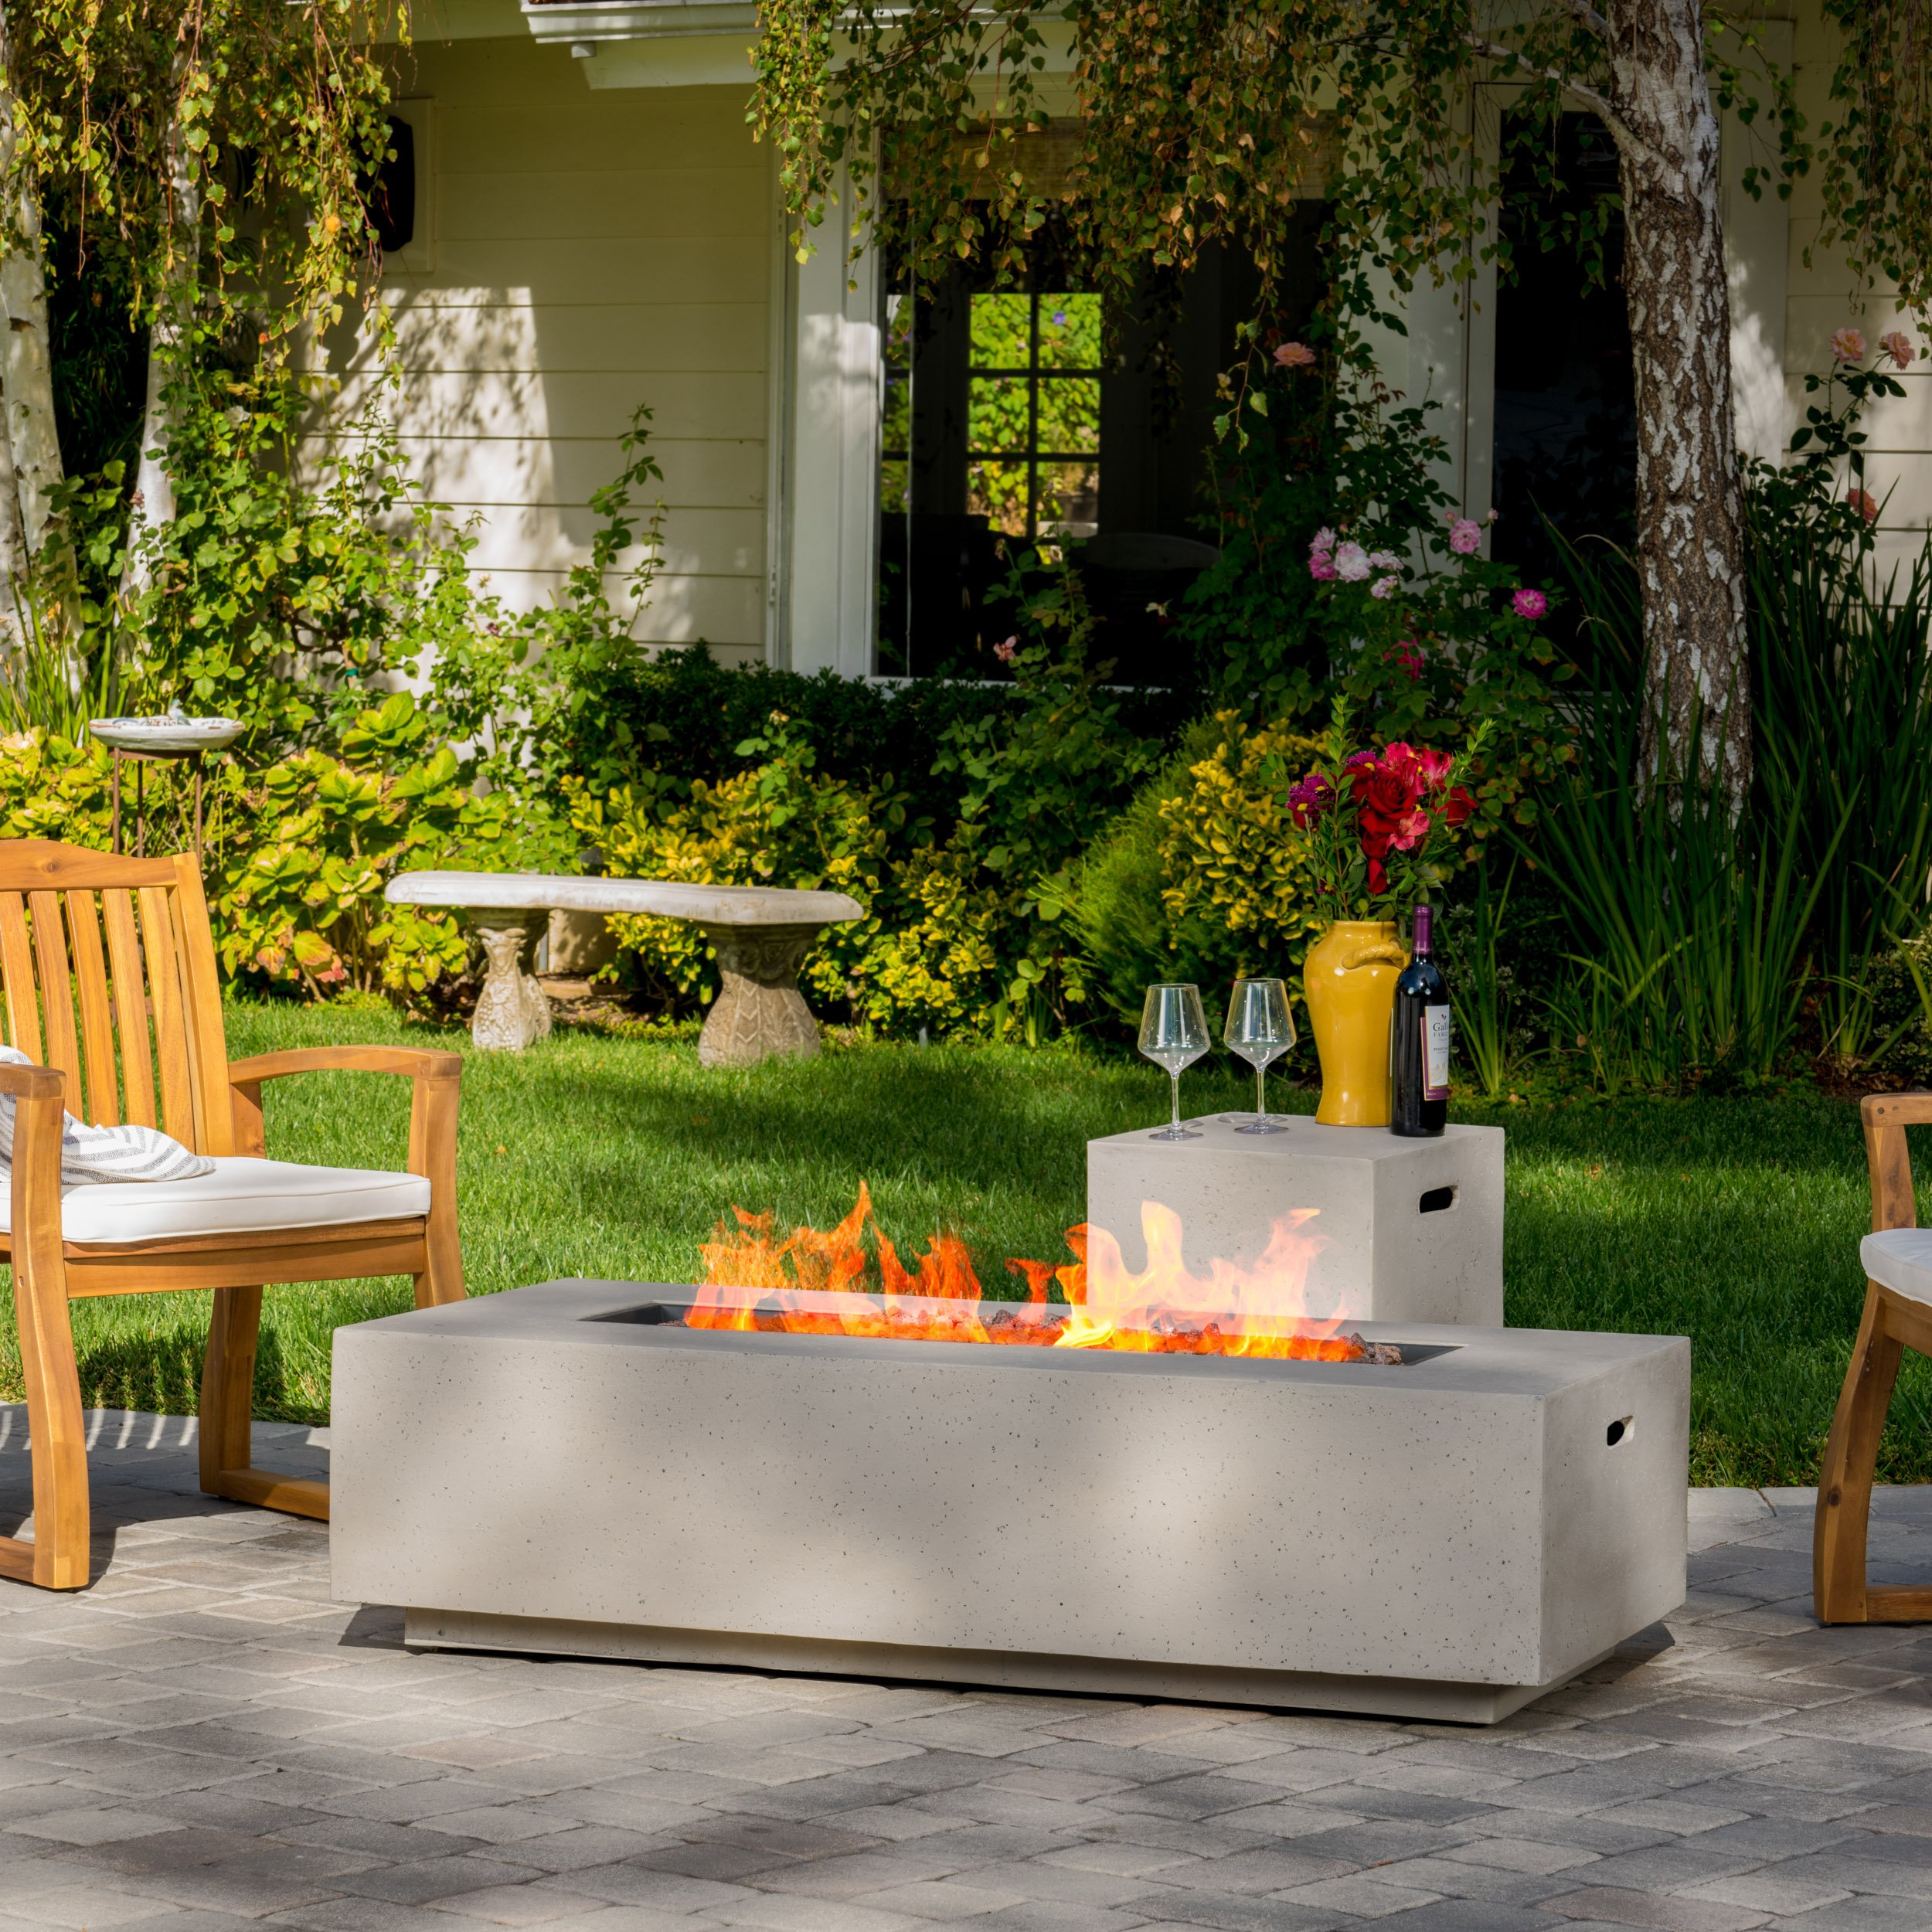 Jaxon Outdoor Fire Table with Lava Rocks & Tank Holder (Light Grey) by GDF Studio